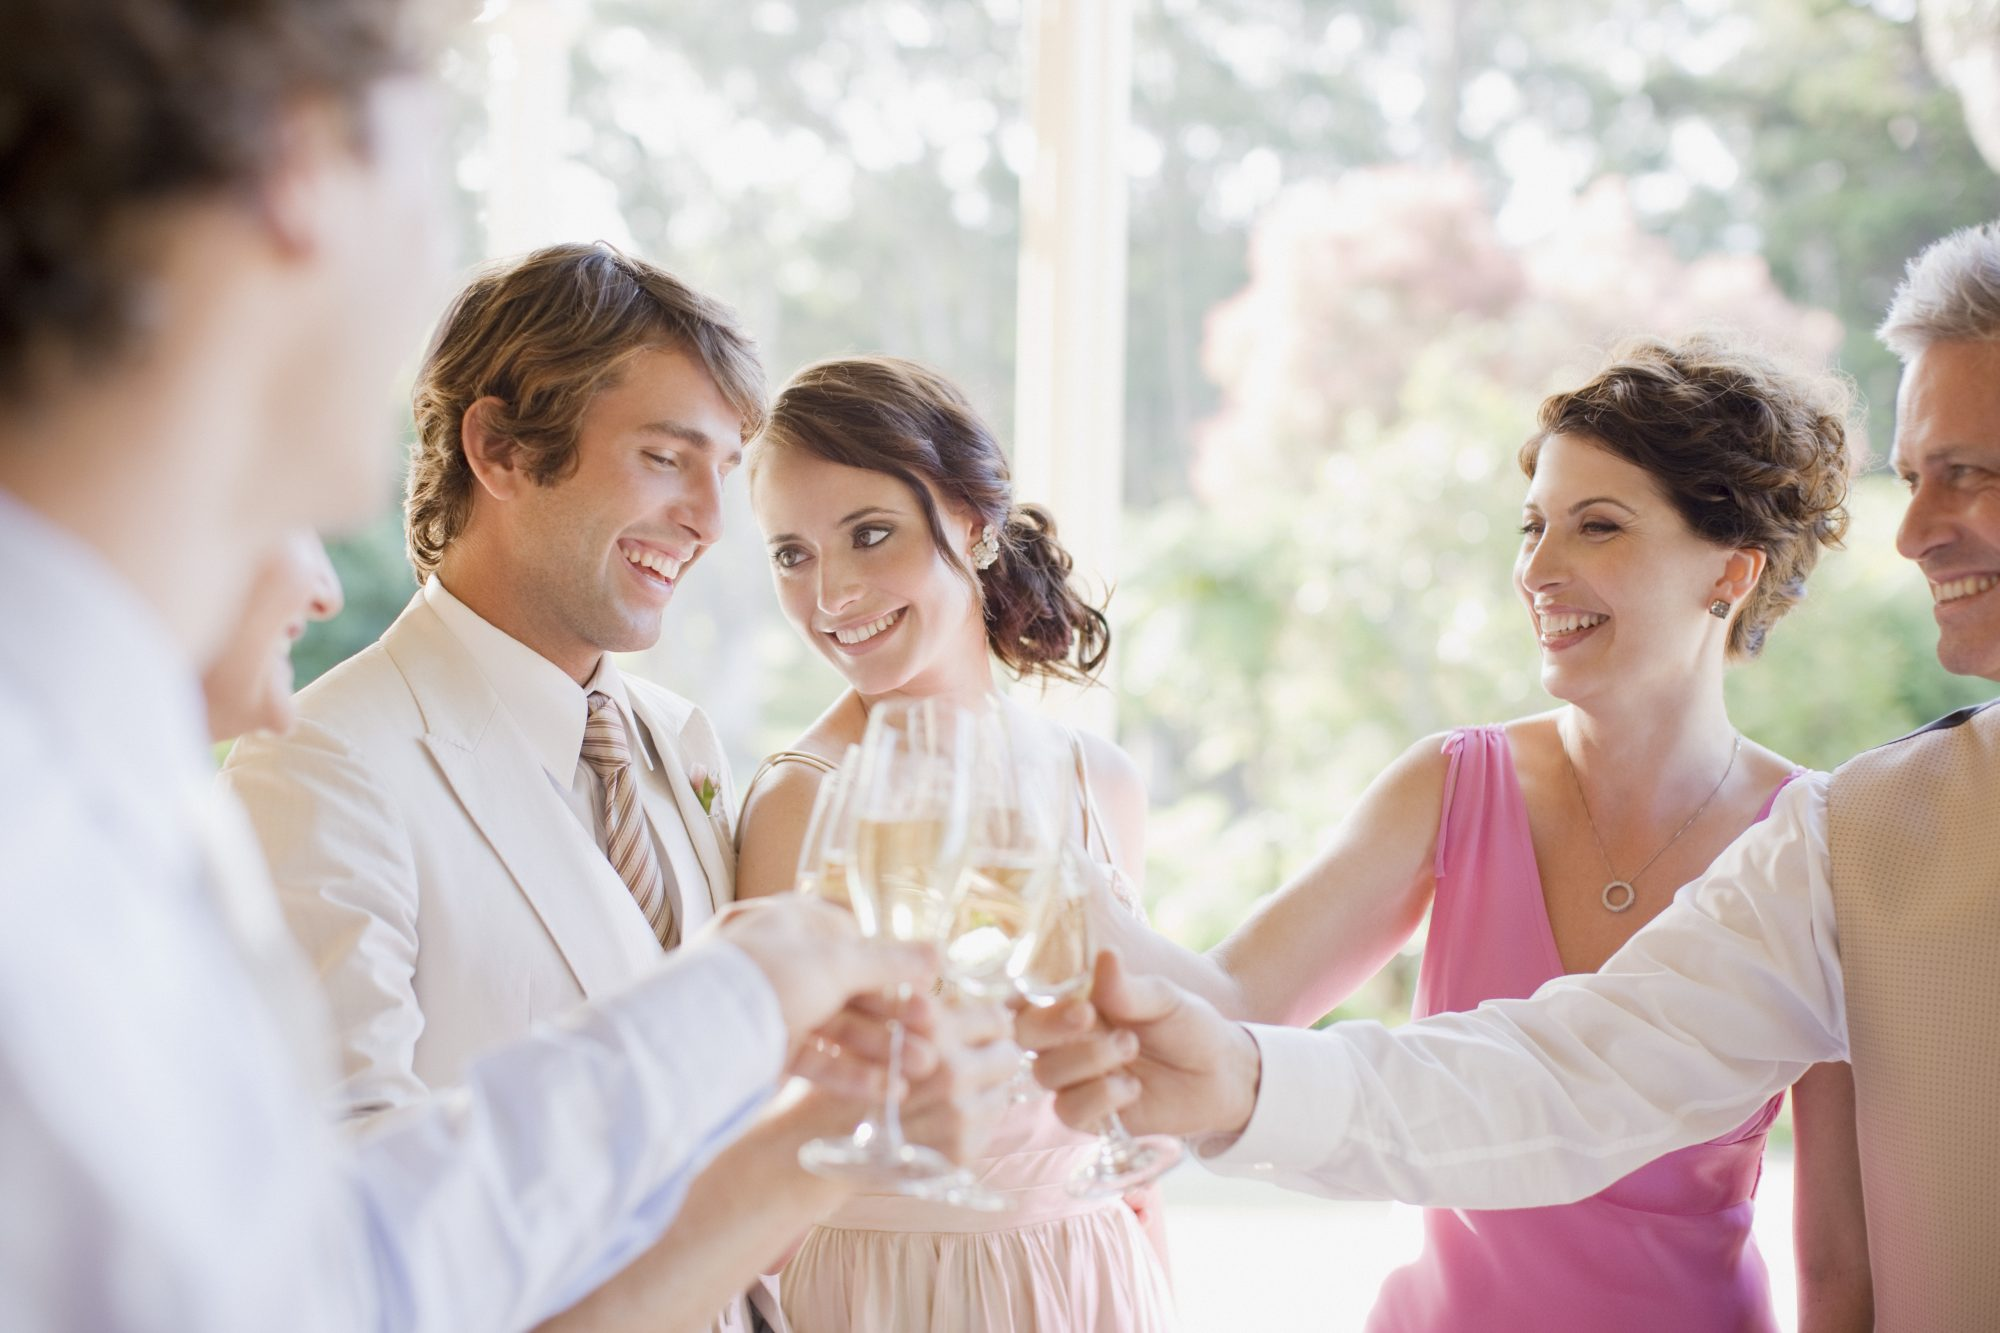 Toasting at Event